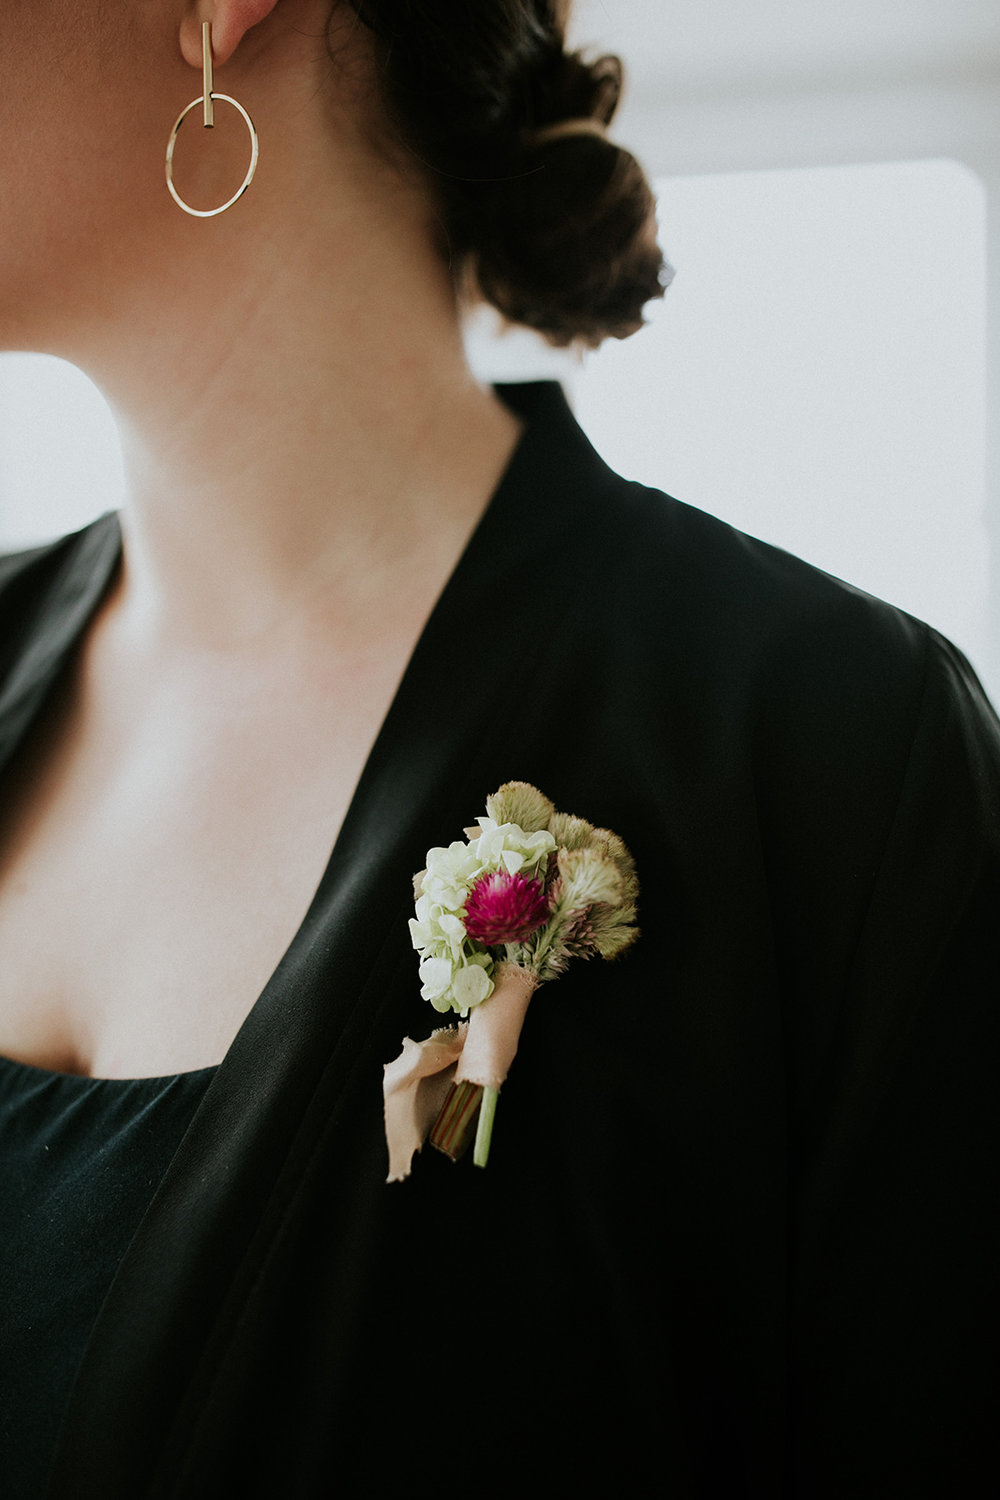 Beautiful boutonnieres made by Lisa of  Pot + Box  for all of the panelists using  Rosemarine Textiles ribbon , as modeled by  The Glossary's   Mandy Lancia .